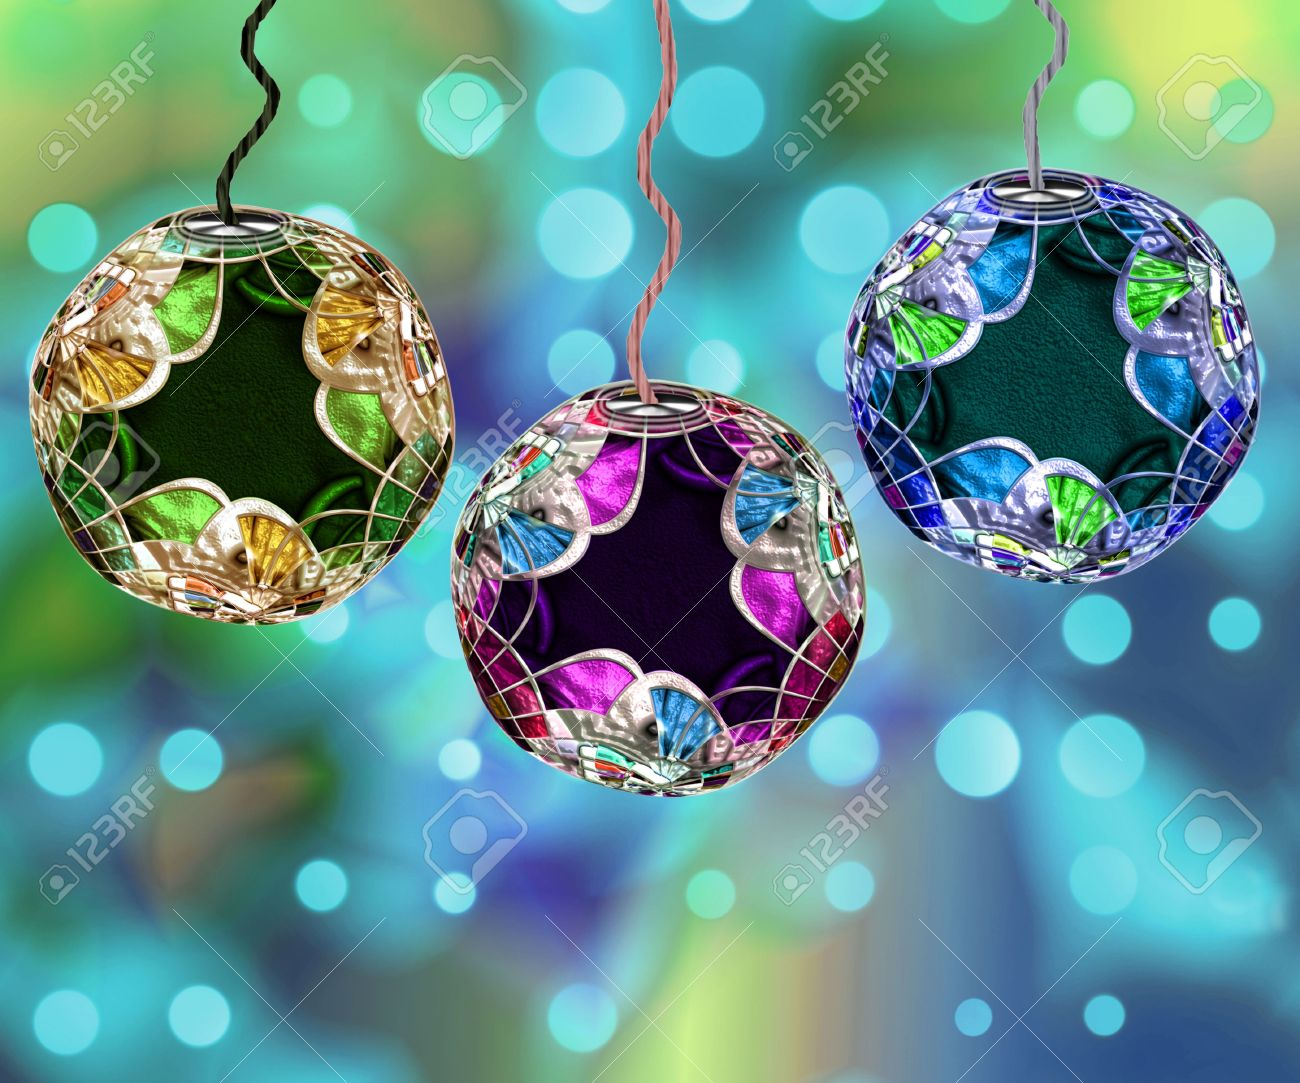 Beautiful Christmas Ornaments christmas ornaments stock photos. royalty free christmas ornaments